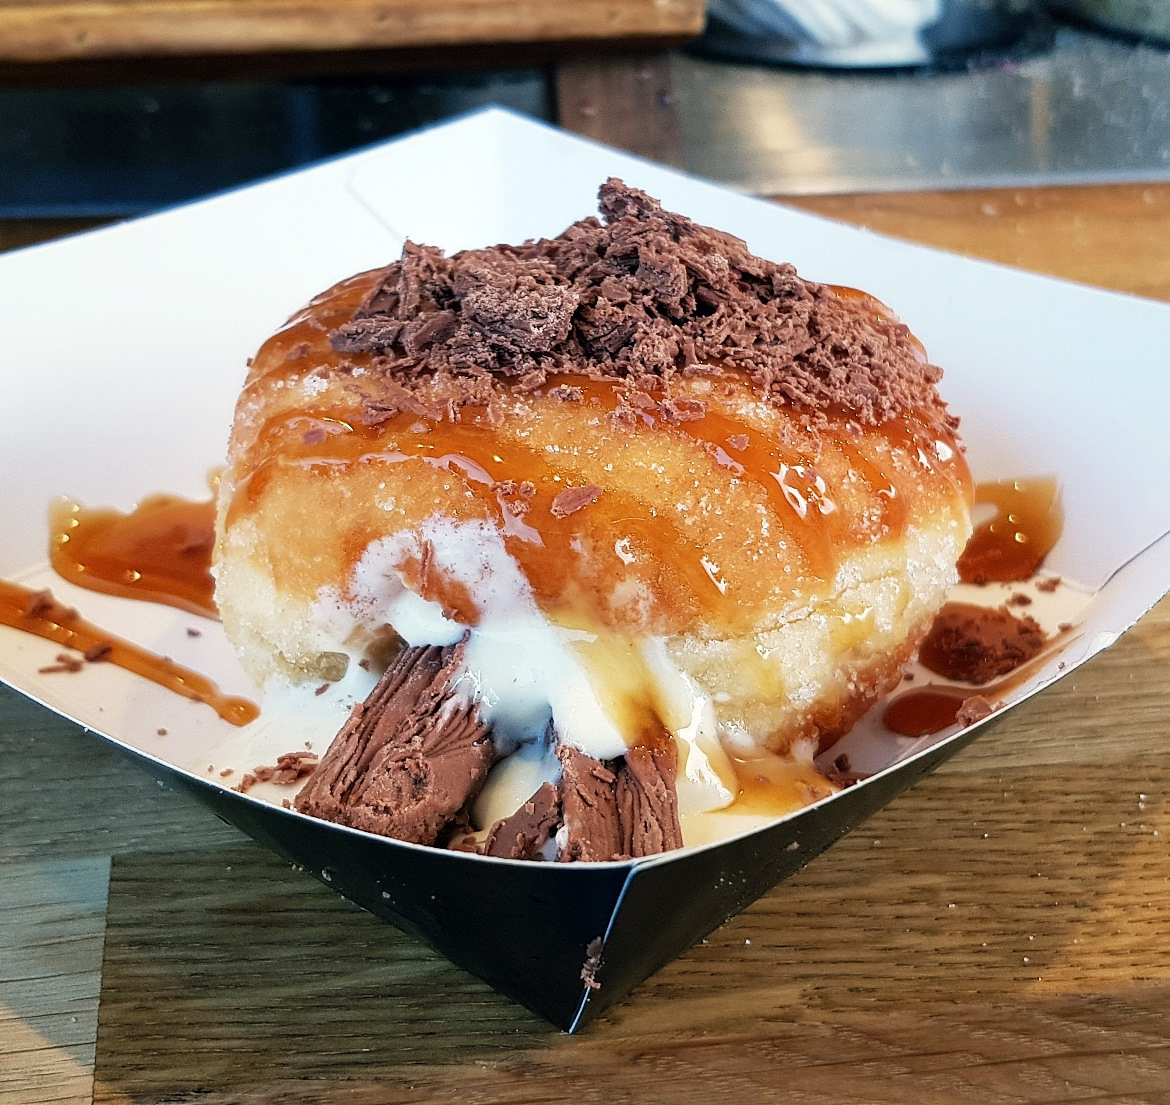 Dohhut doughnut at Leeds Food and Drink Festival - June 2018 Monthly Recap by BeckyBecky Blogs